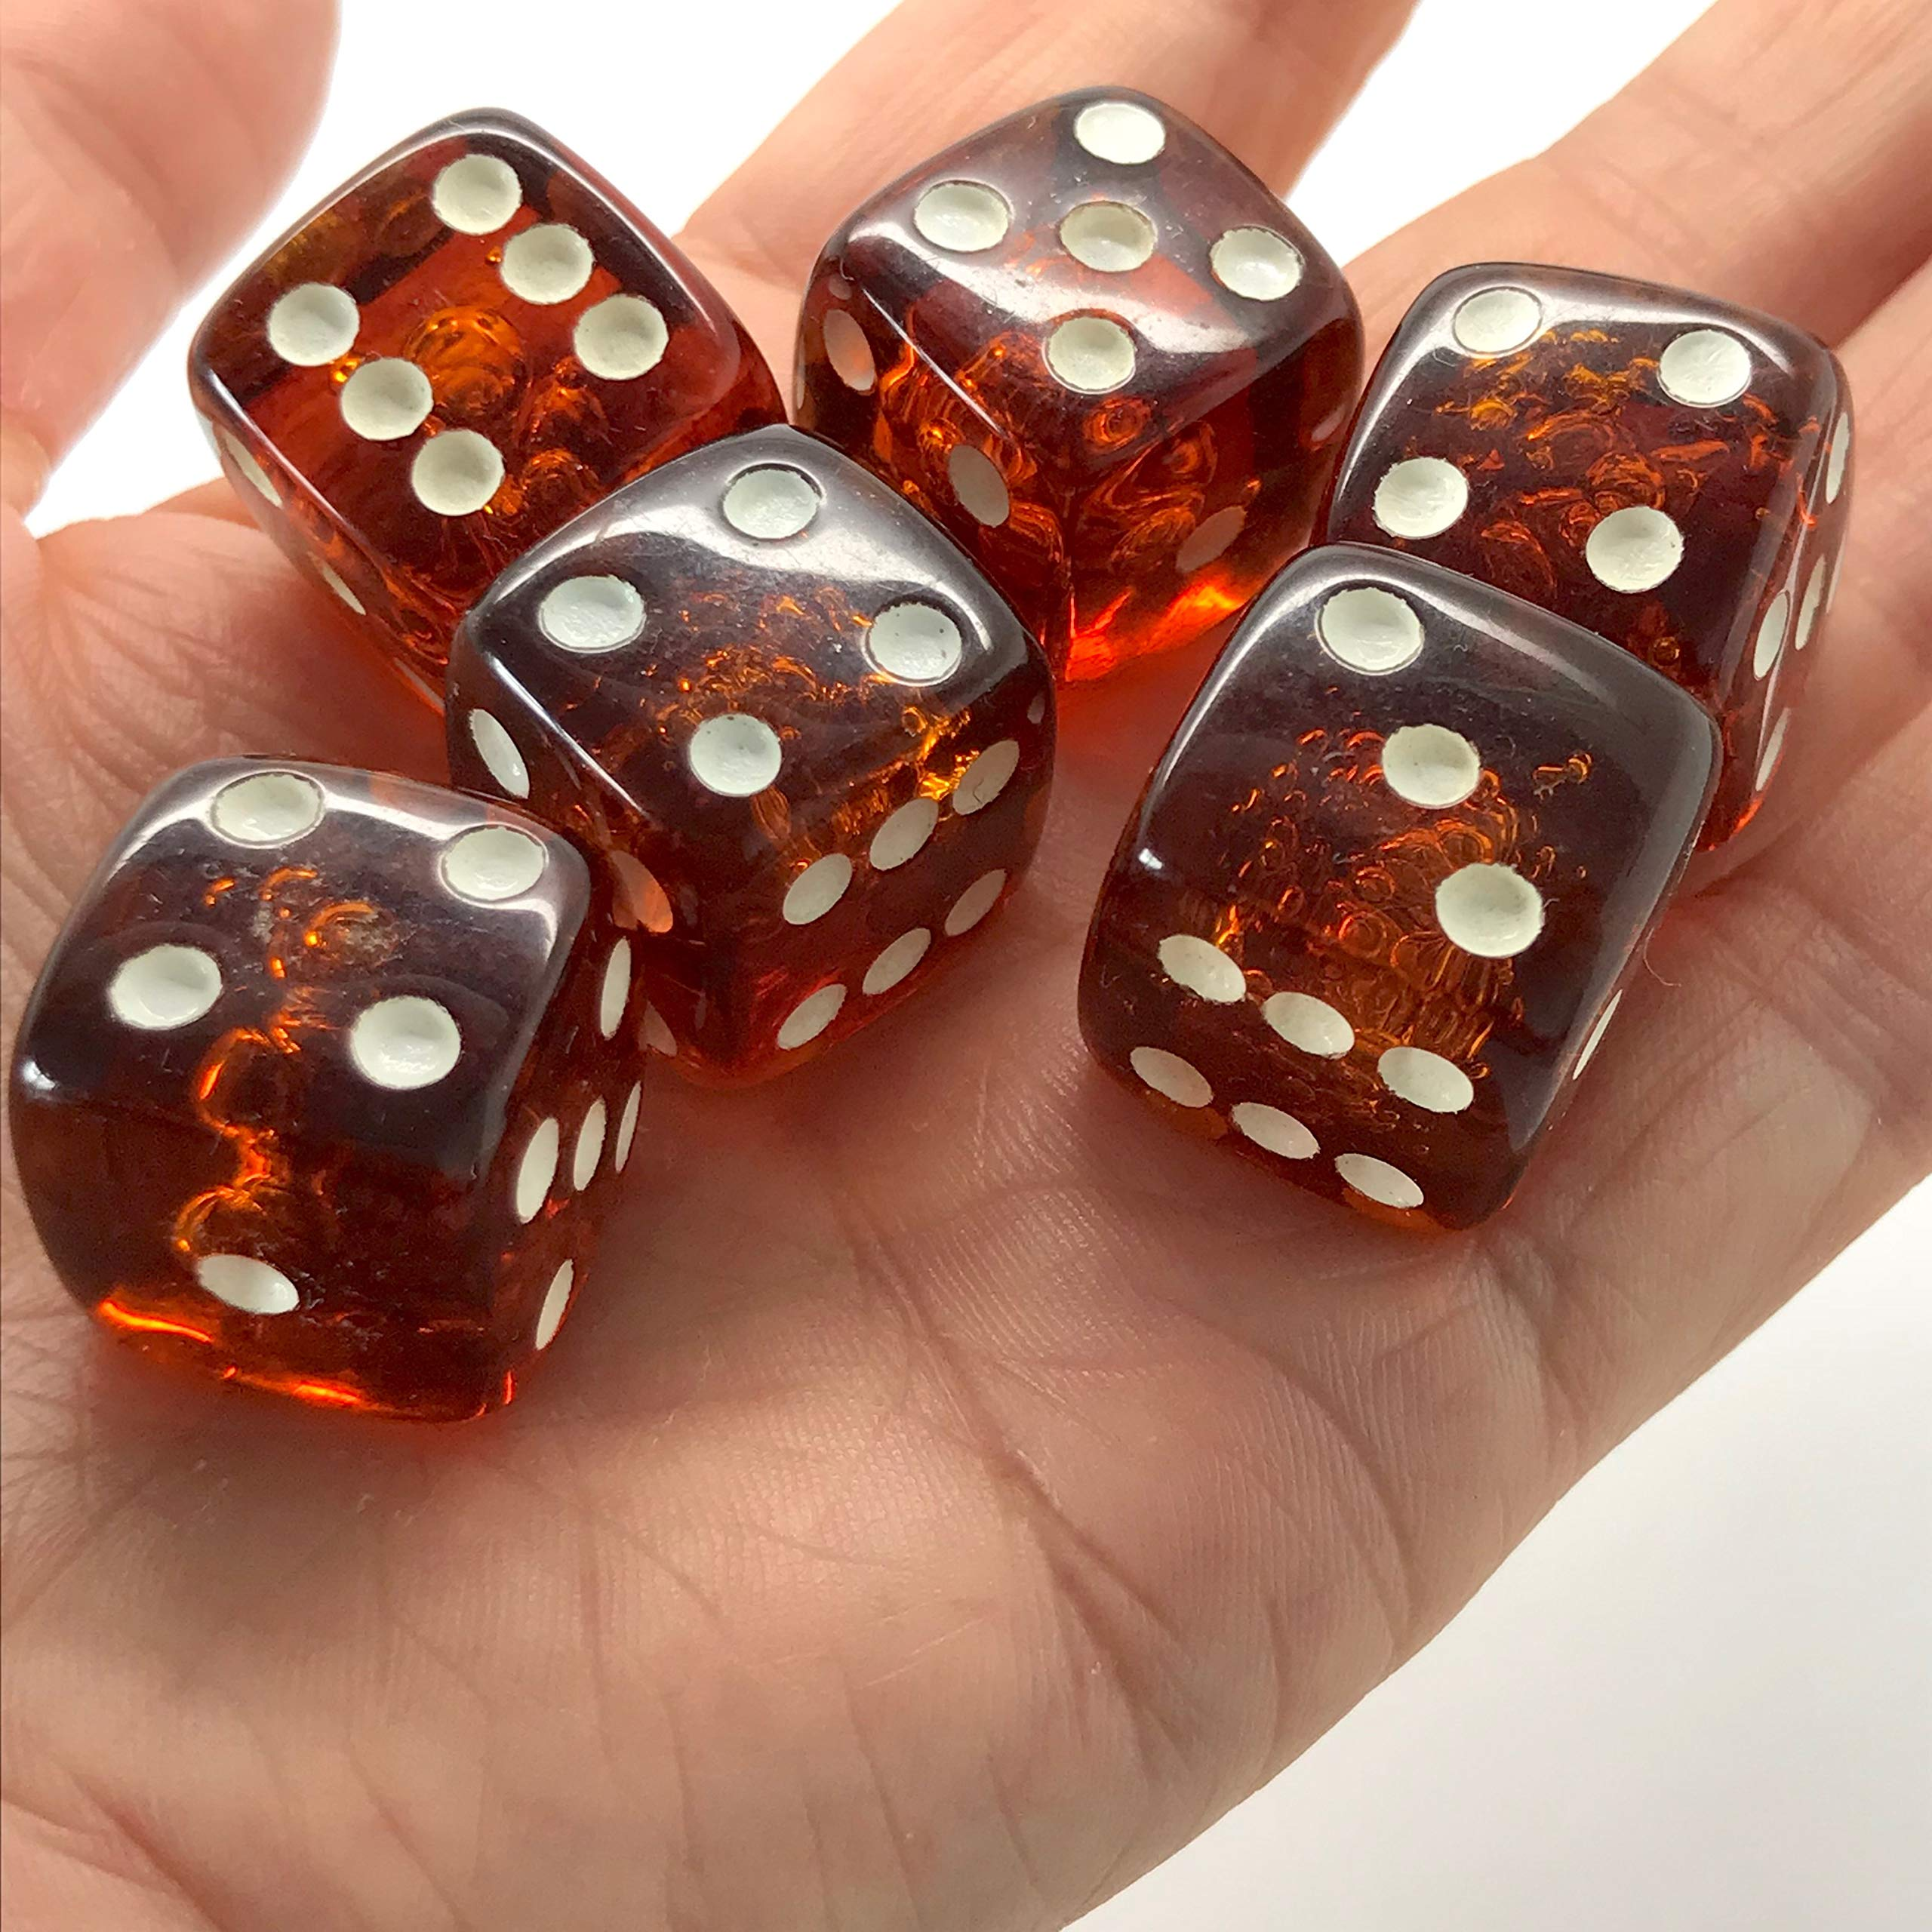 x6 Proper size Amber Dice set for Board games and Gambling by Generic (Image #5)